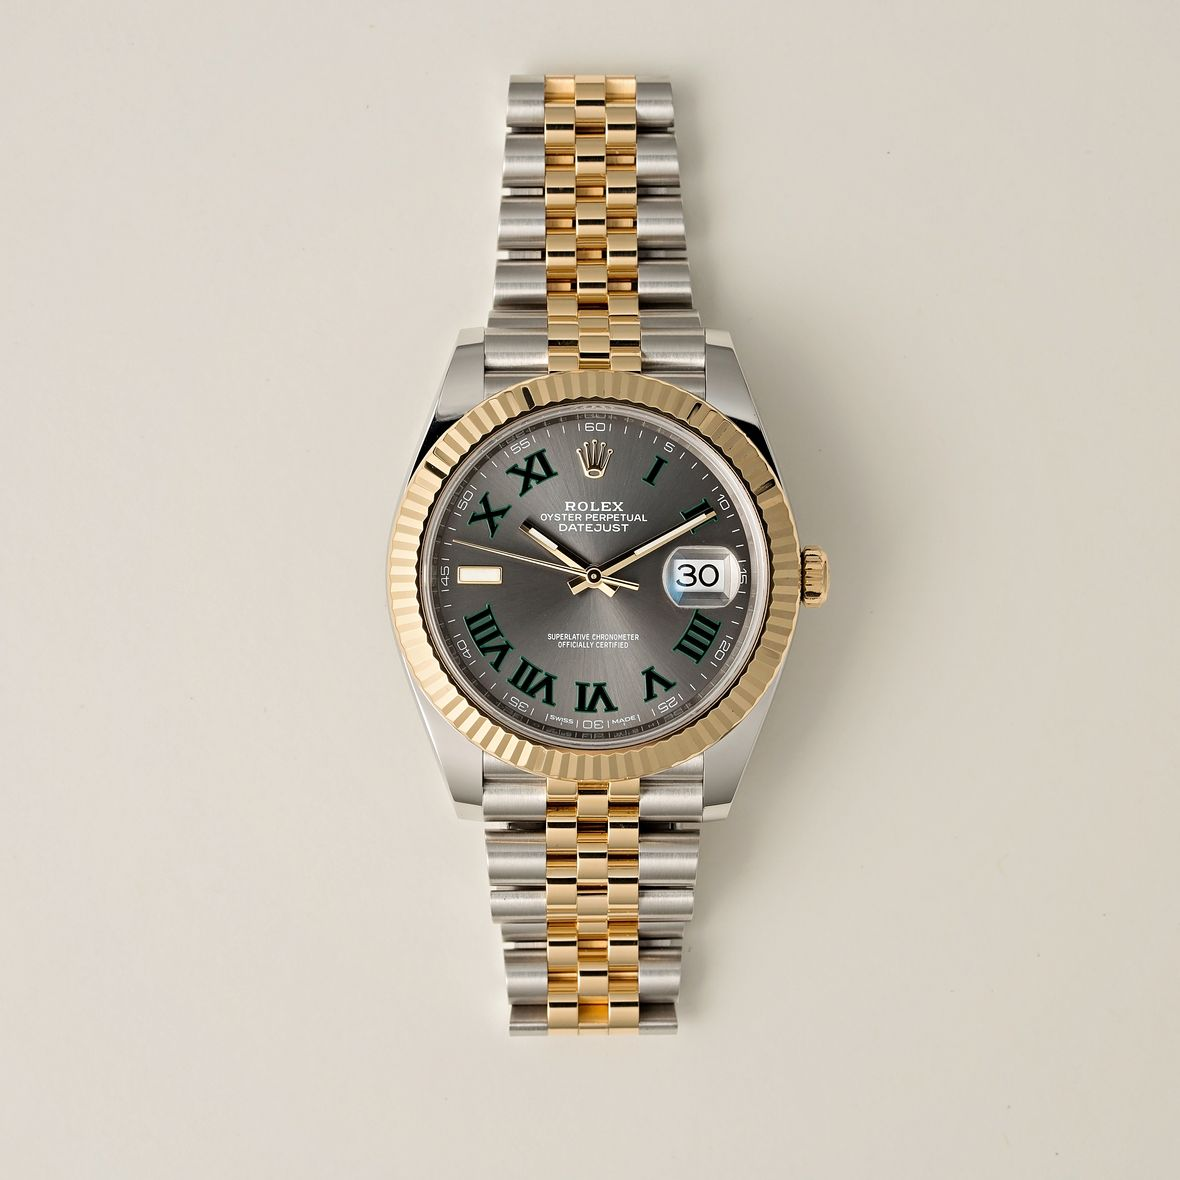 Two-Tone Rolex Datejust 126333 Steel and Gold 41mm Wimbledon Dial